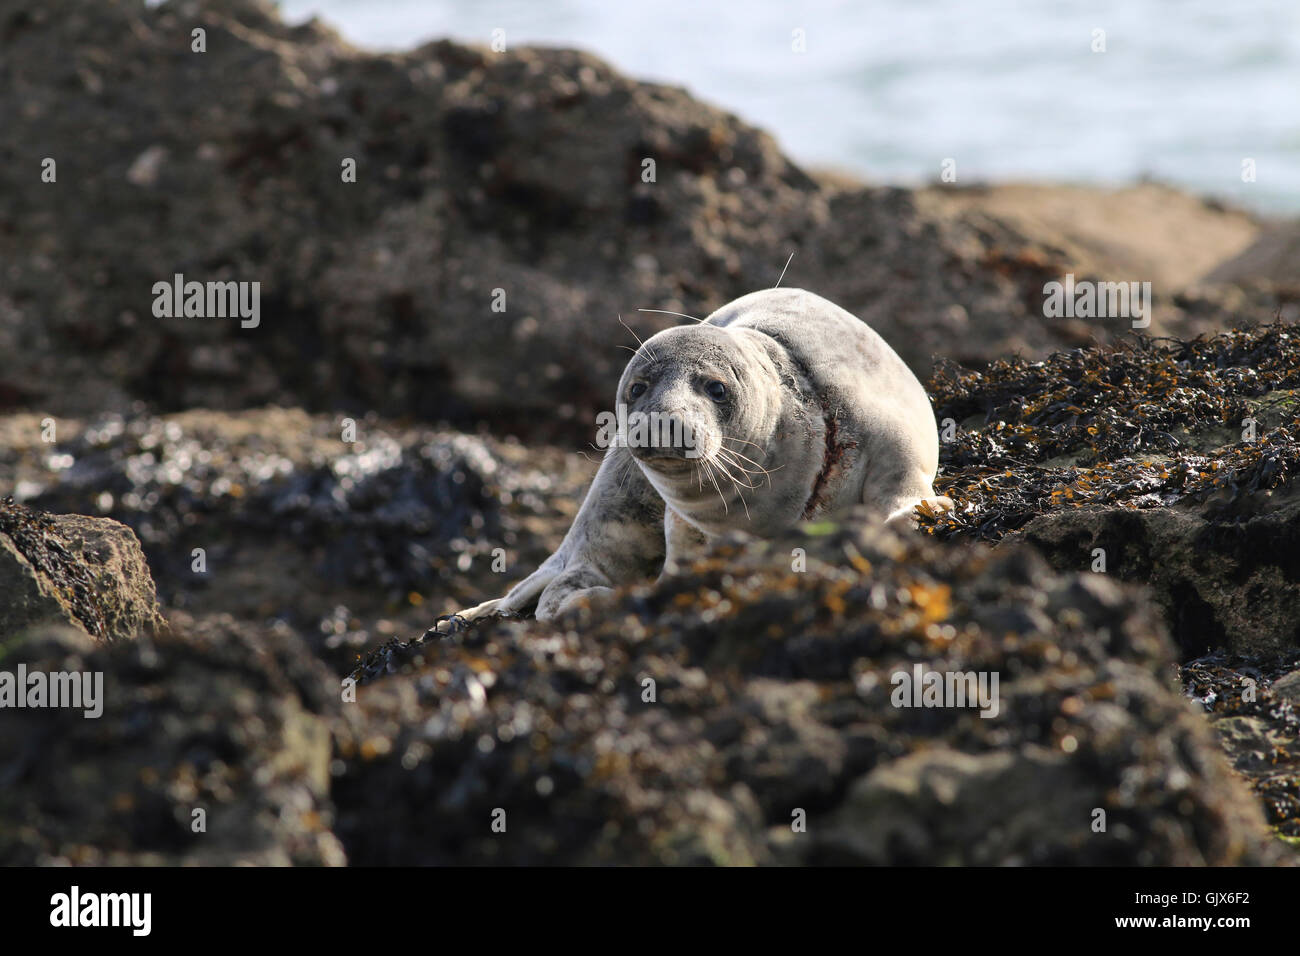 Young seal entangled and injured by discarded fishing line - Stock Image